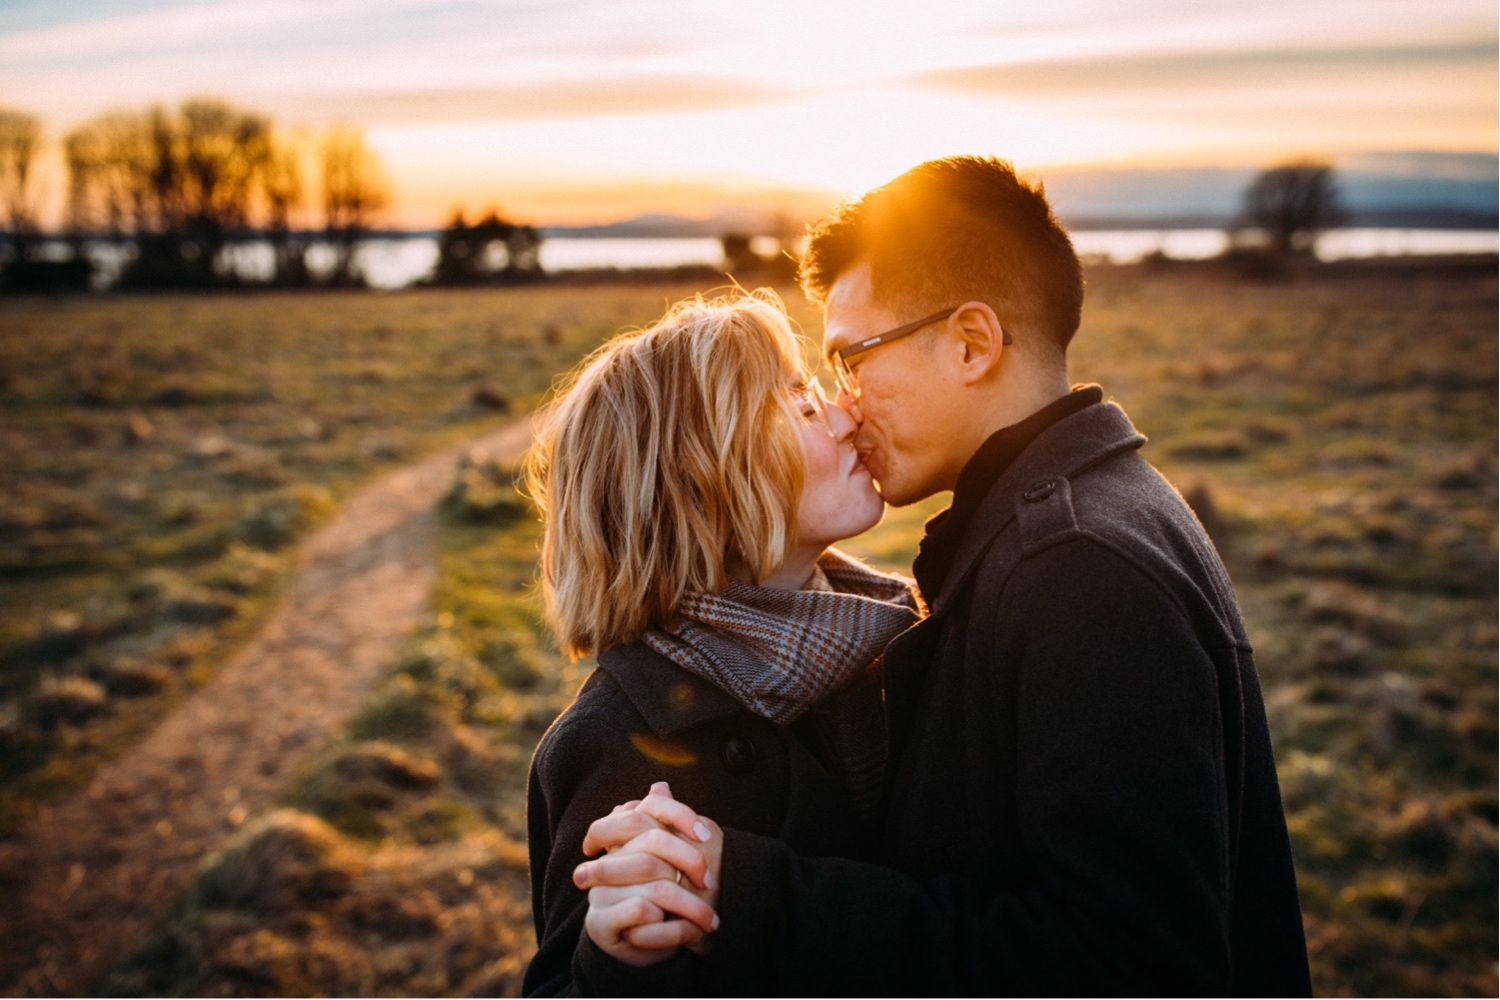 24_MC-113_champagne_sunsetproposal_adventure,_adventurous,_discoverypark_zoe_elopement_elopementphotographer_zoeburchardstudio_seattlebride_sunset_burchard_proposal,_seattle_photographer.jpg